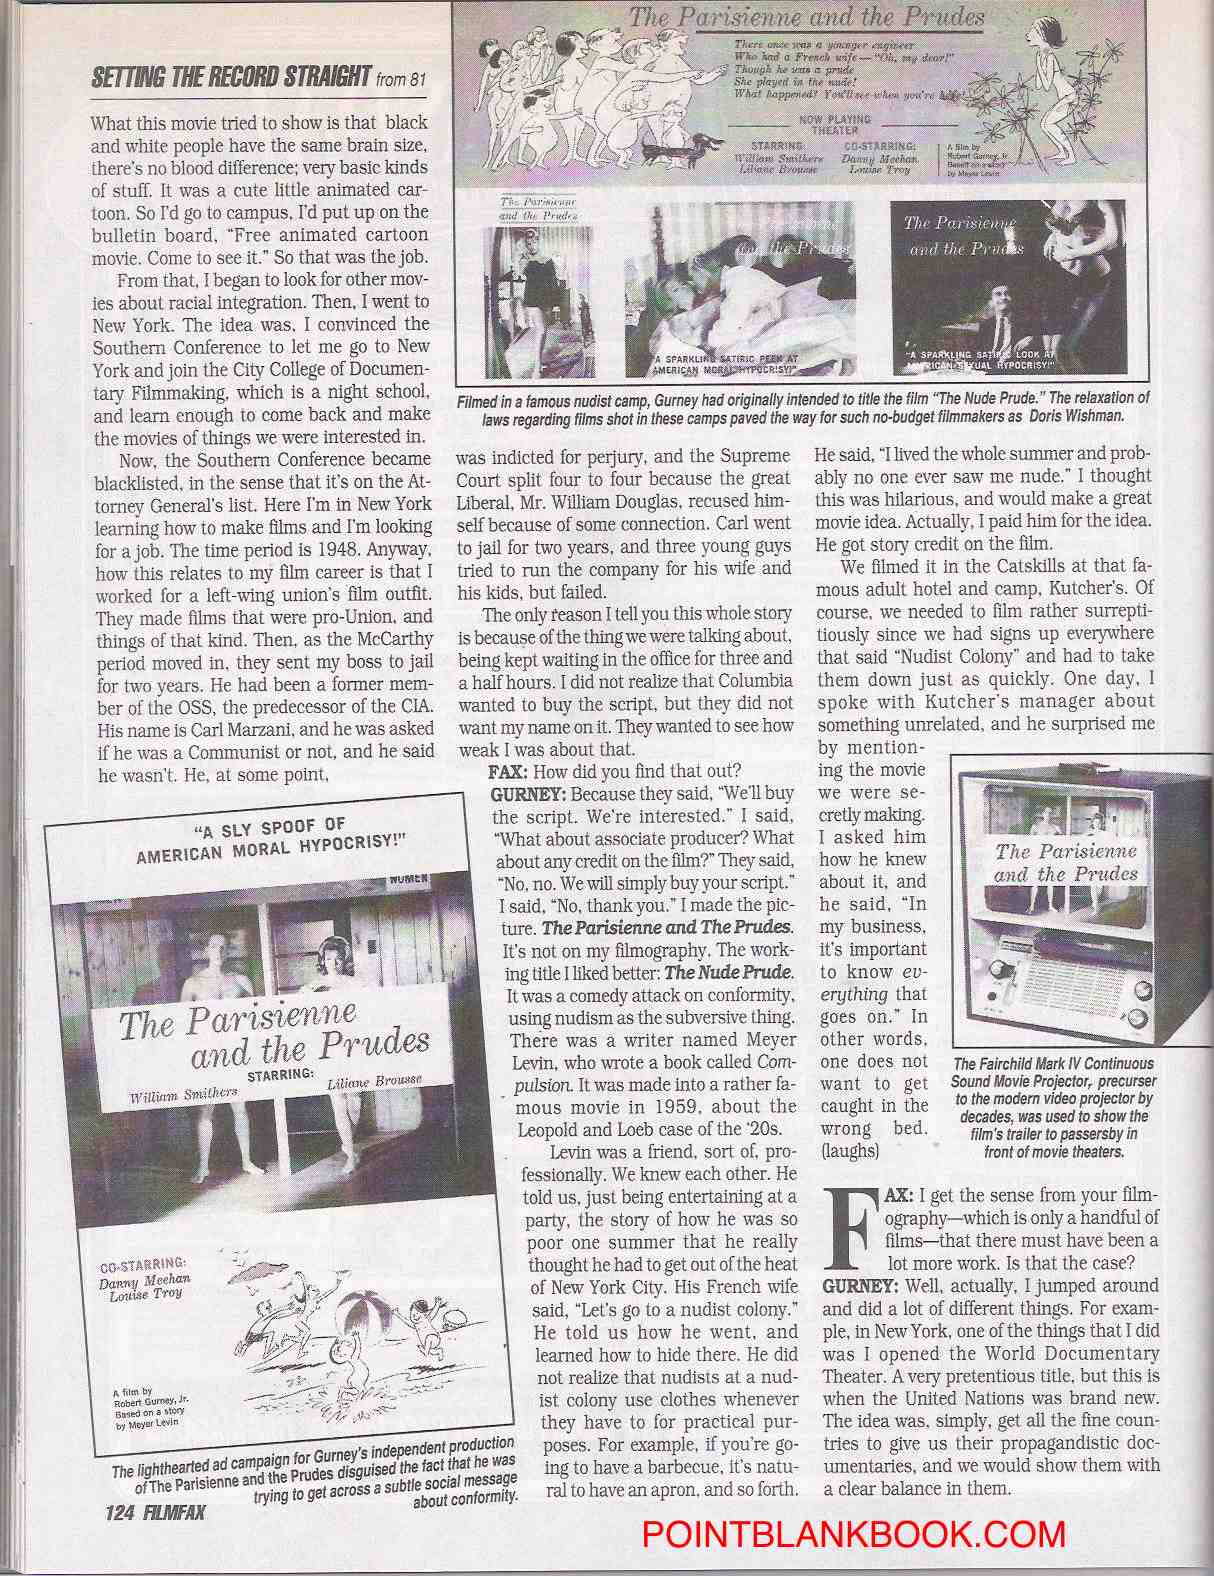 Robert Gurney Filmfax interview, page 9.